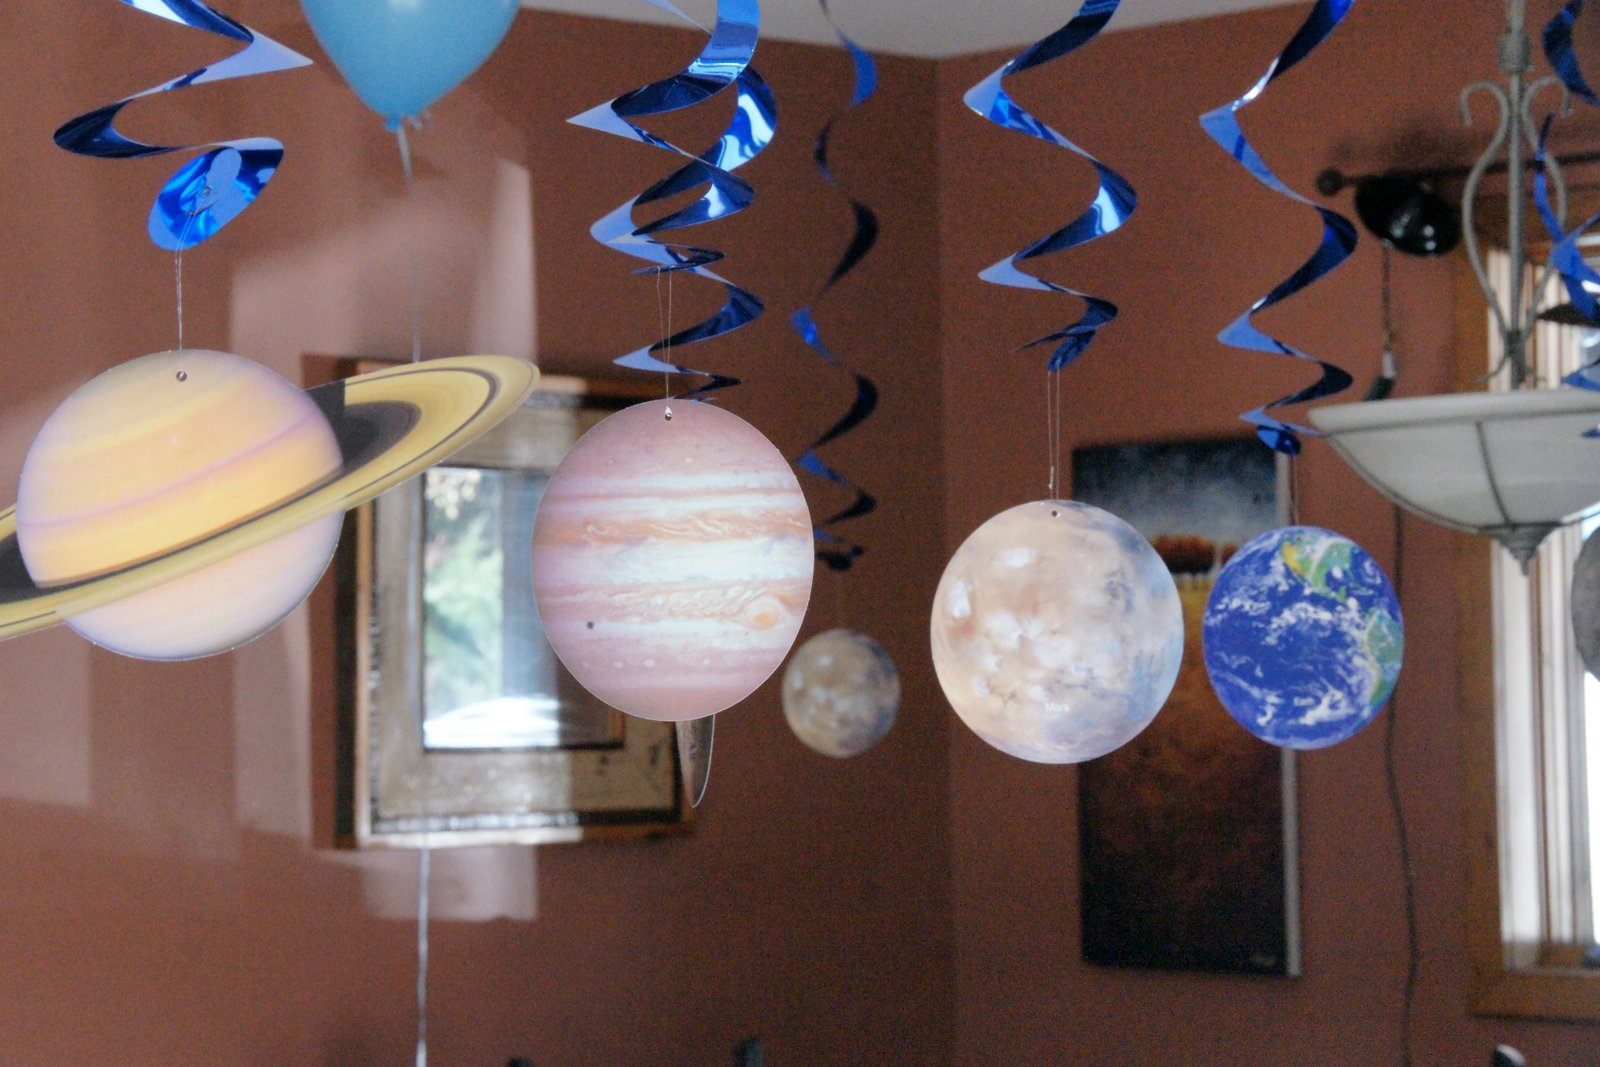 making planets out of balloons - photo #16